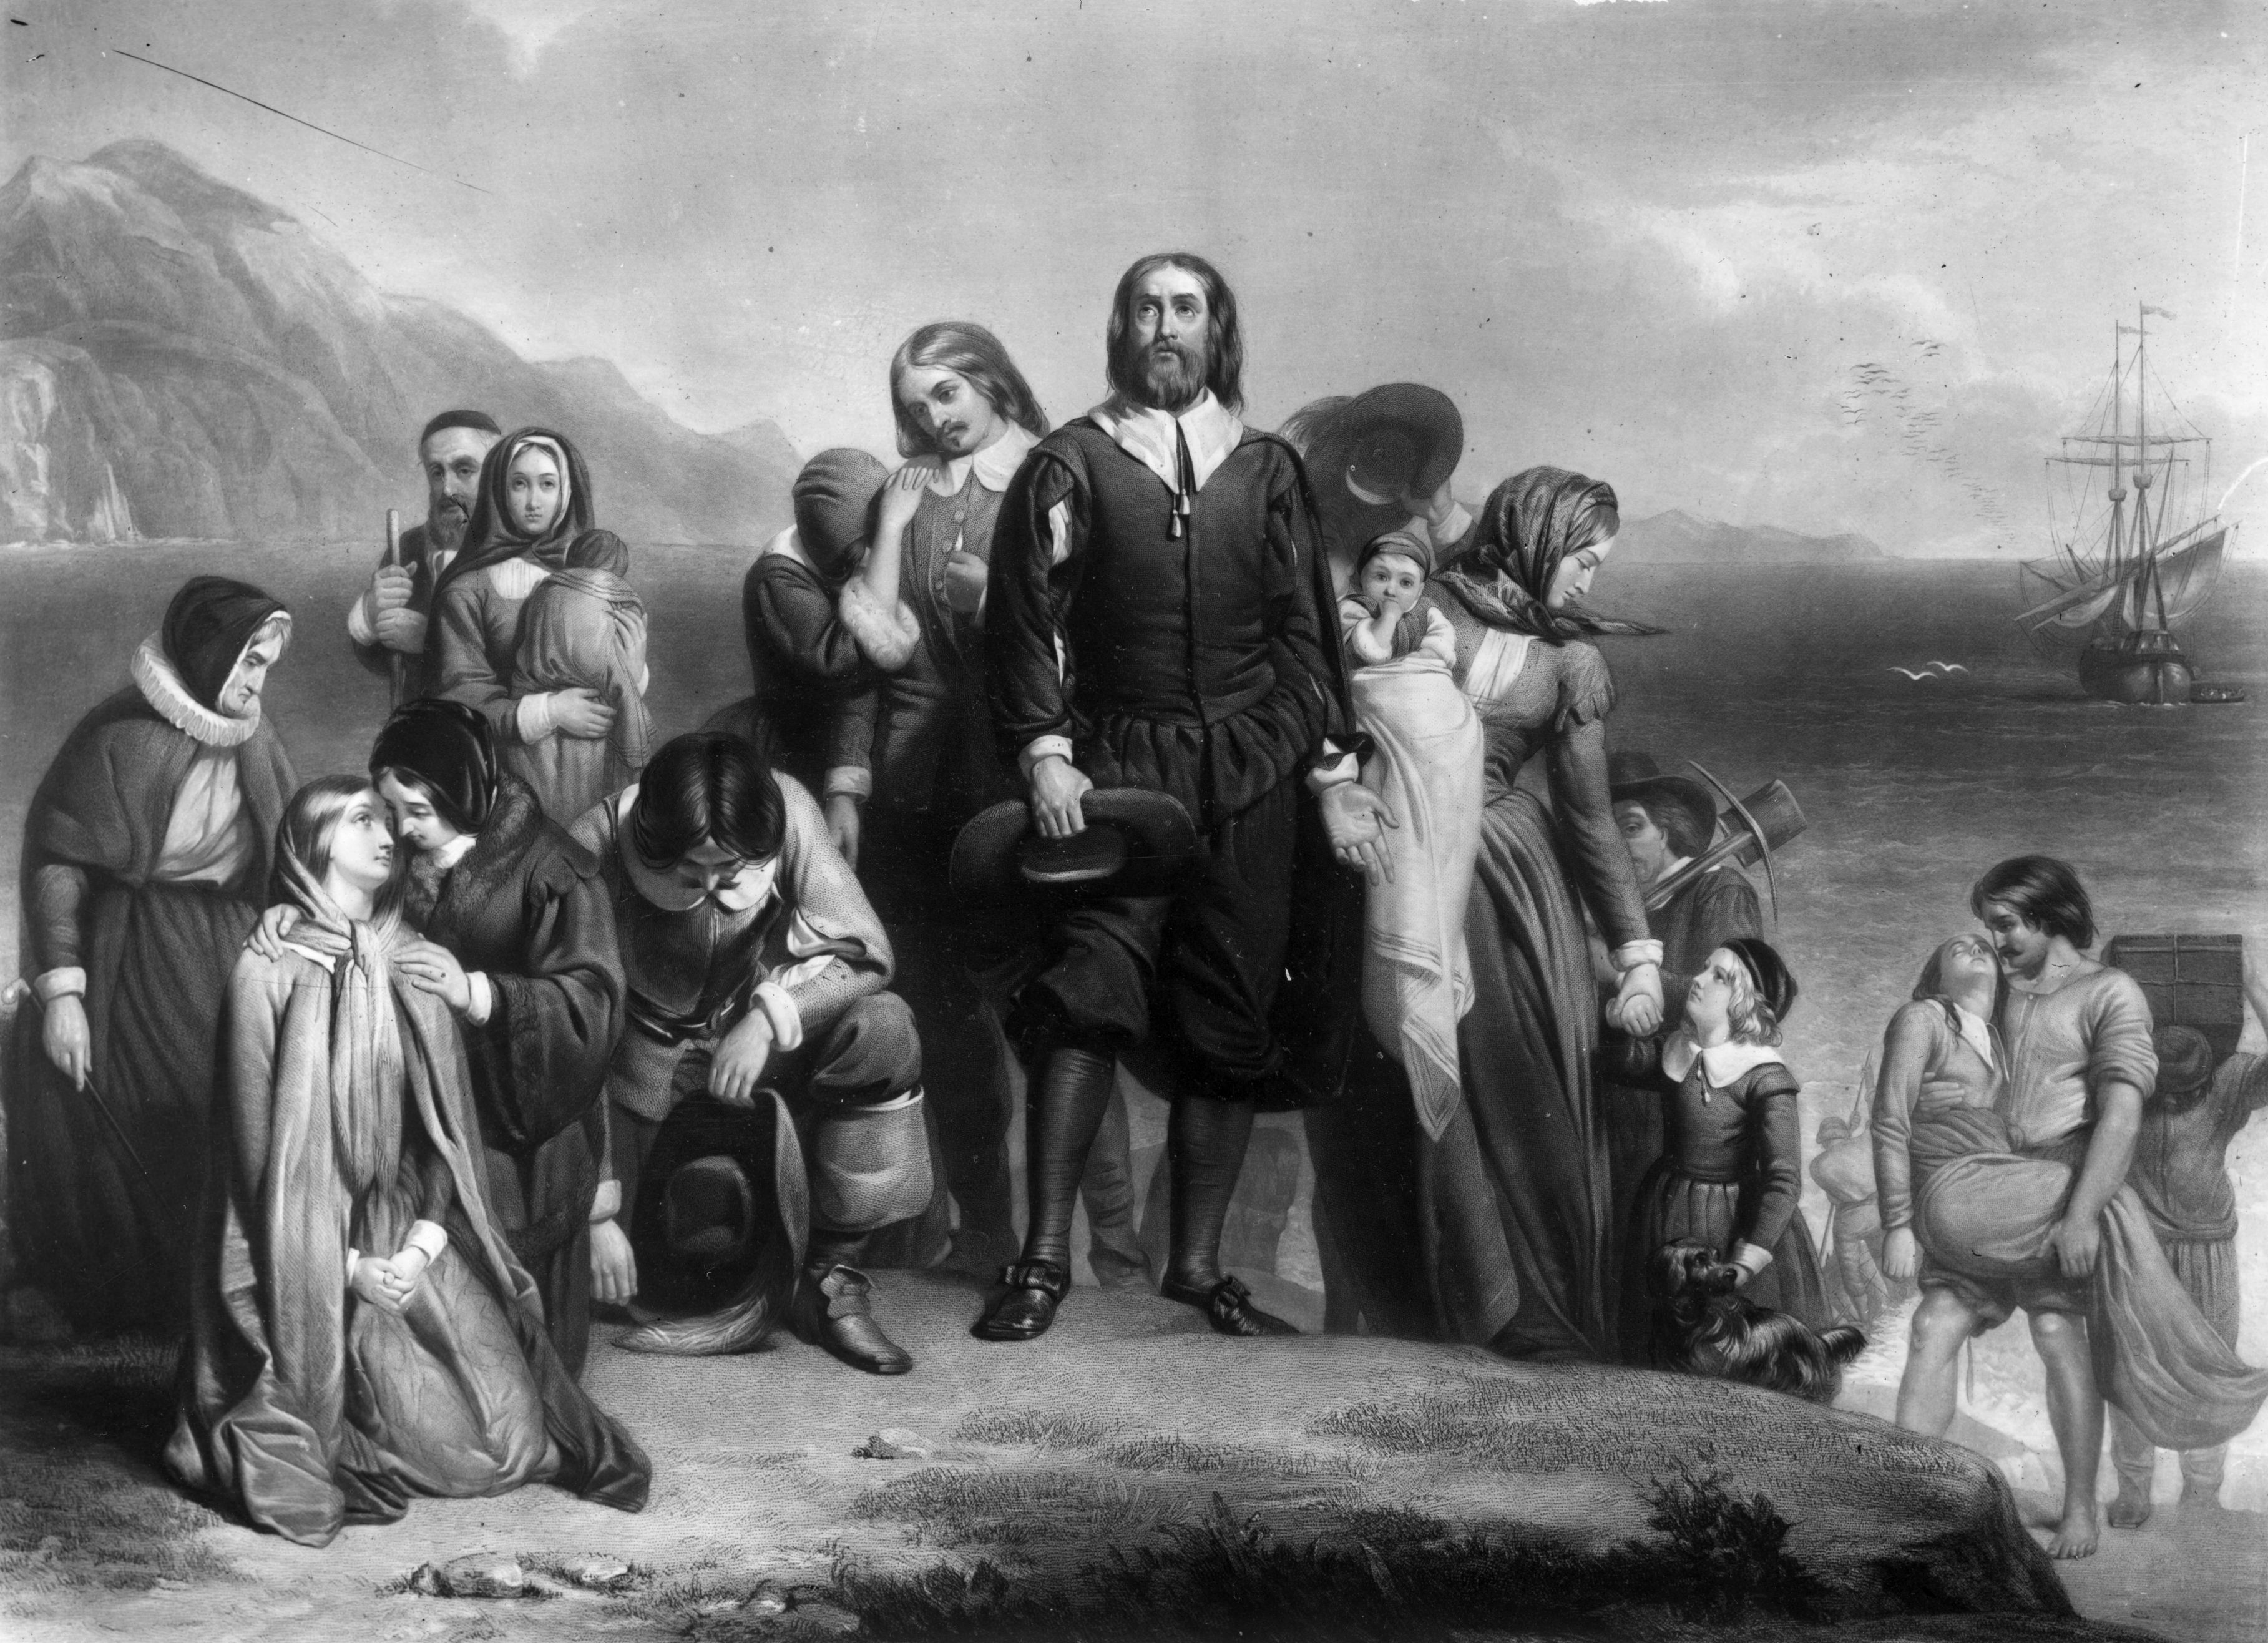 The Pilgrims facts